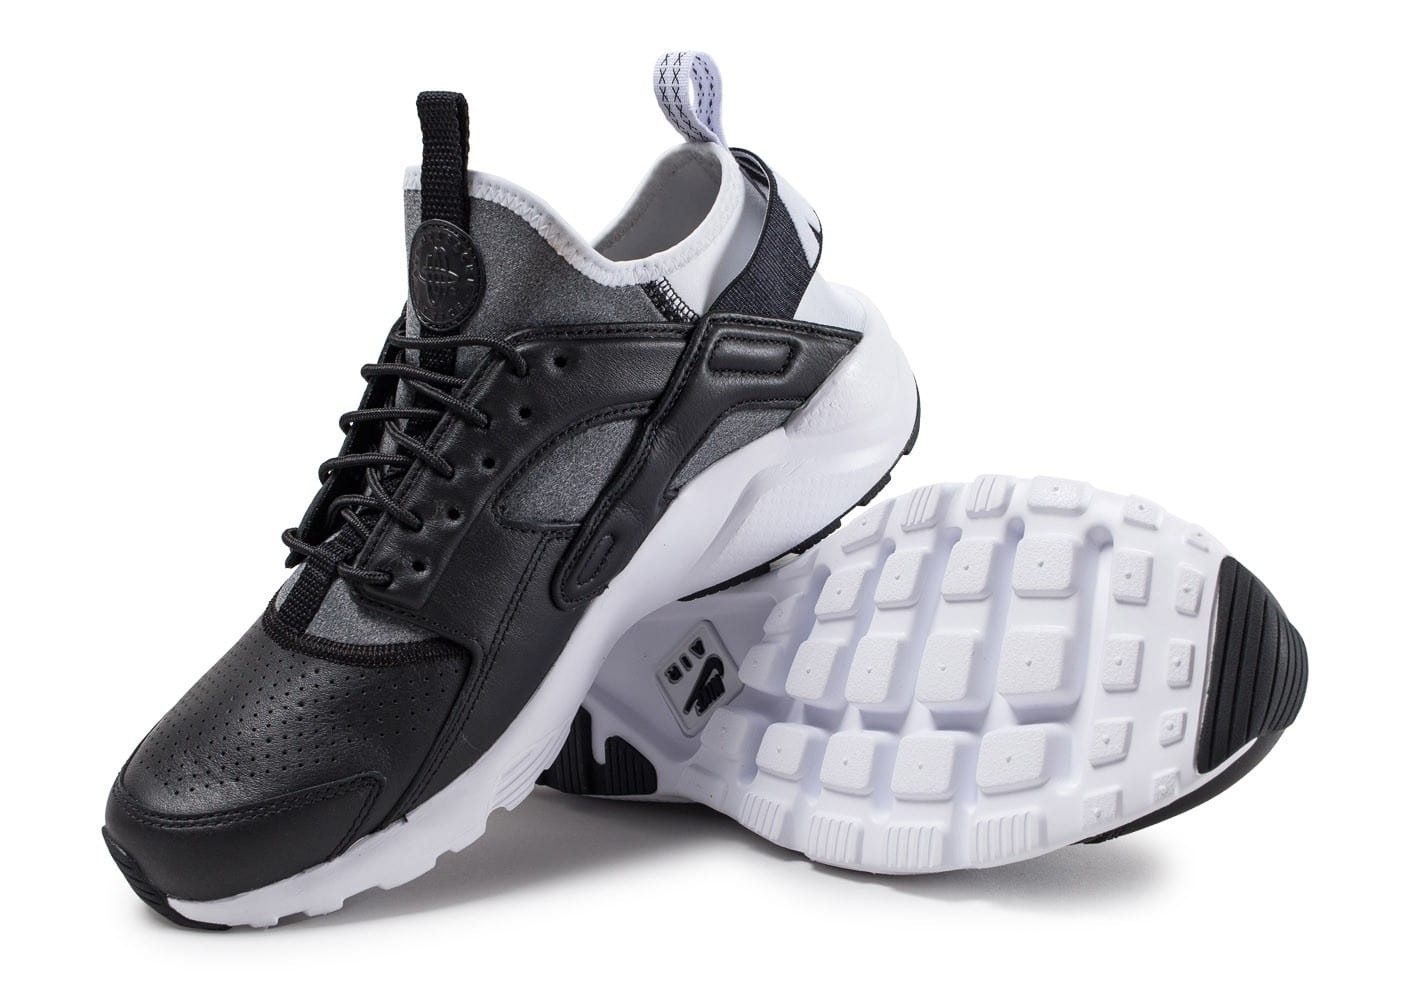 competitive price 76d1c 74670 Nike Air Huarache Ultra noire et blanche - Chaussures .